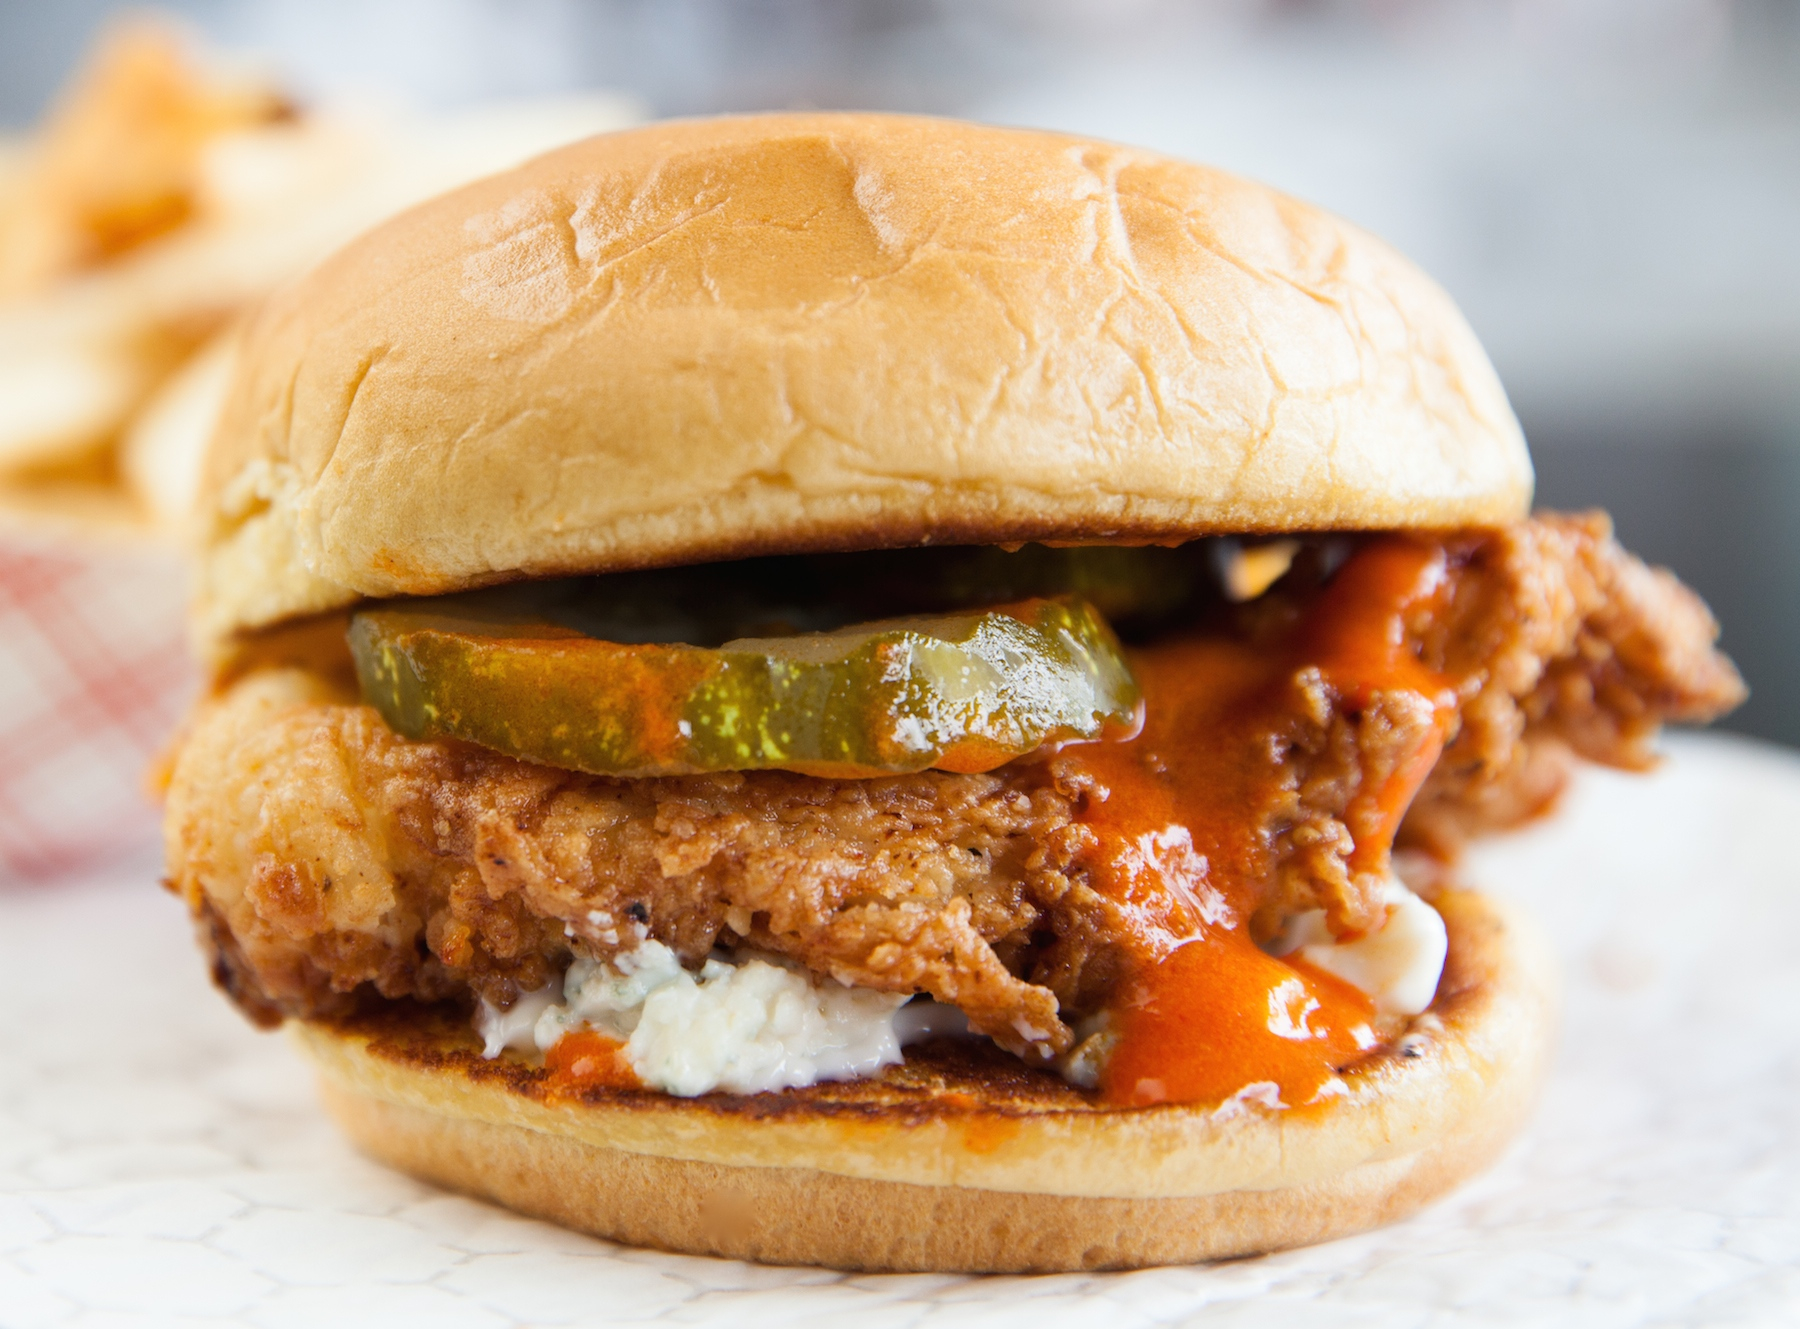 A spicy chicken sandwich side view with the pickles and hot sauce